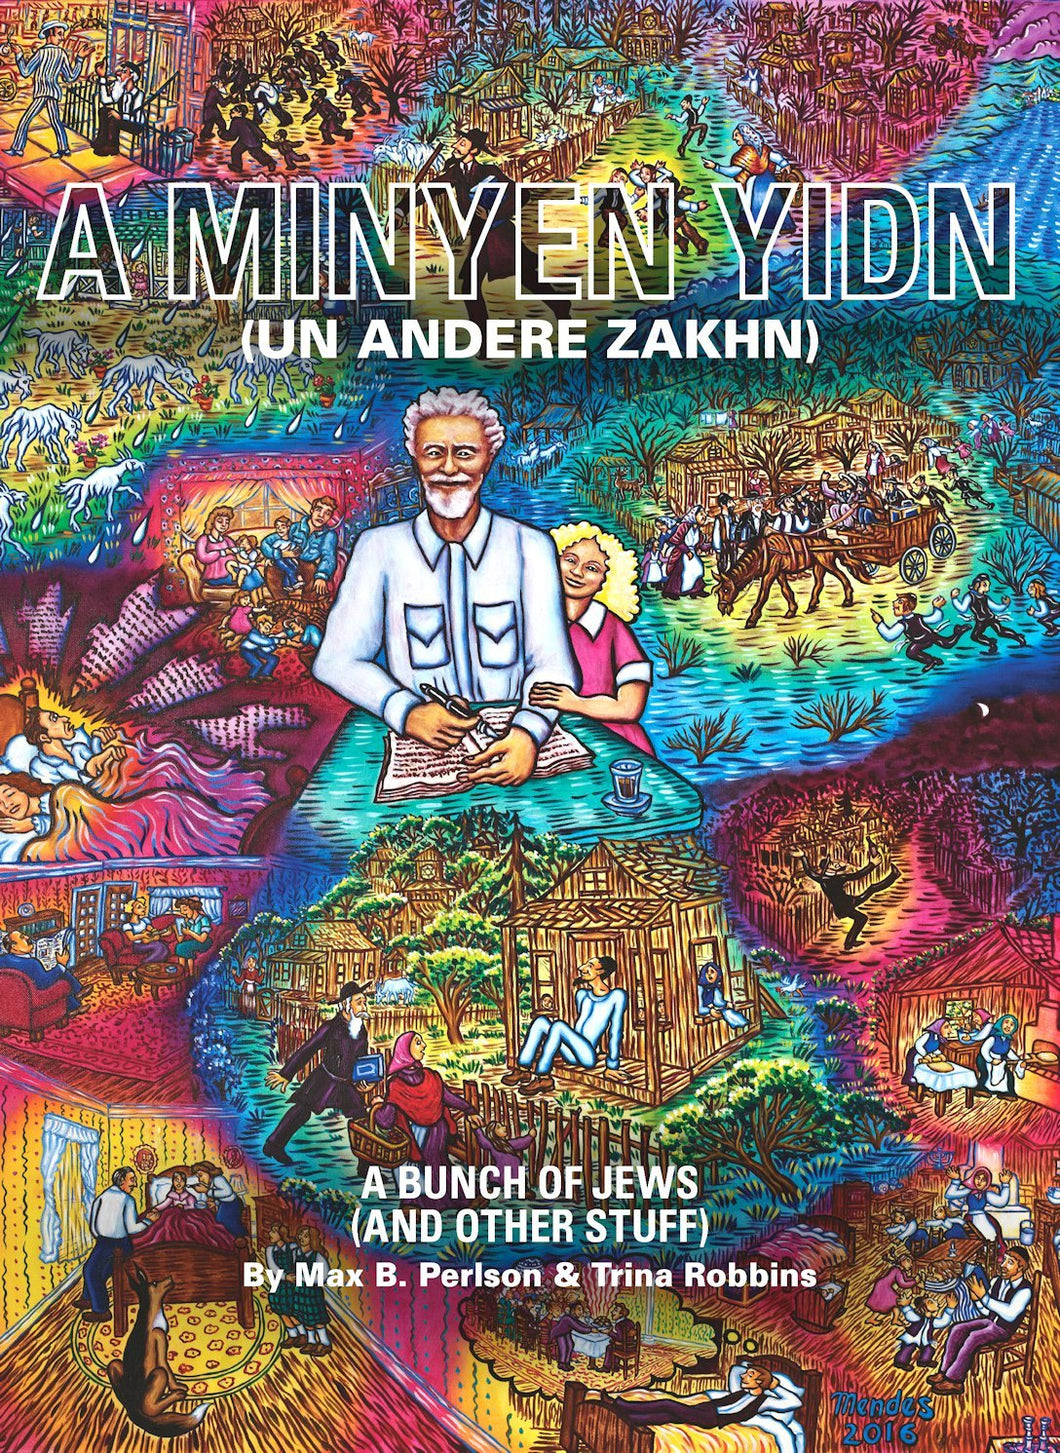 A Bunch of Jews (and other stuff): A Minyen Yidn